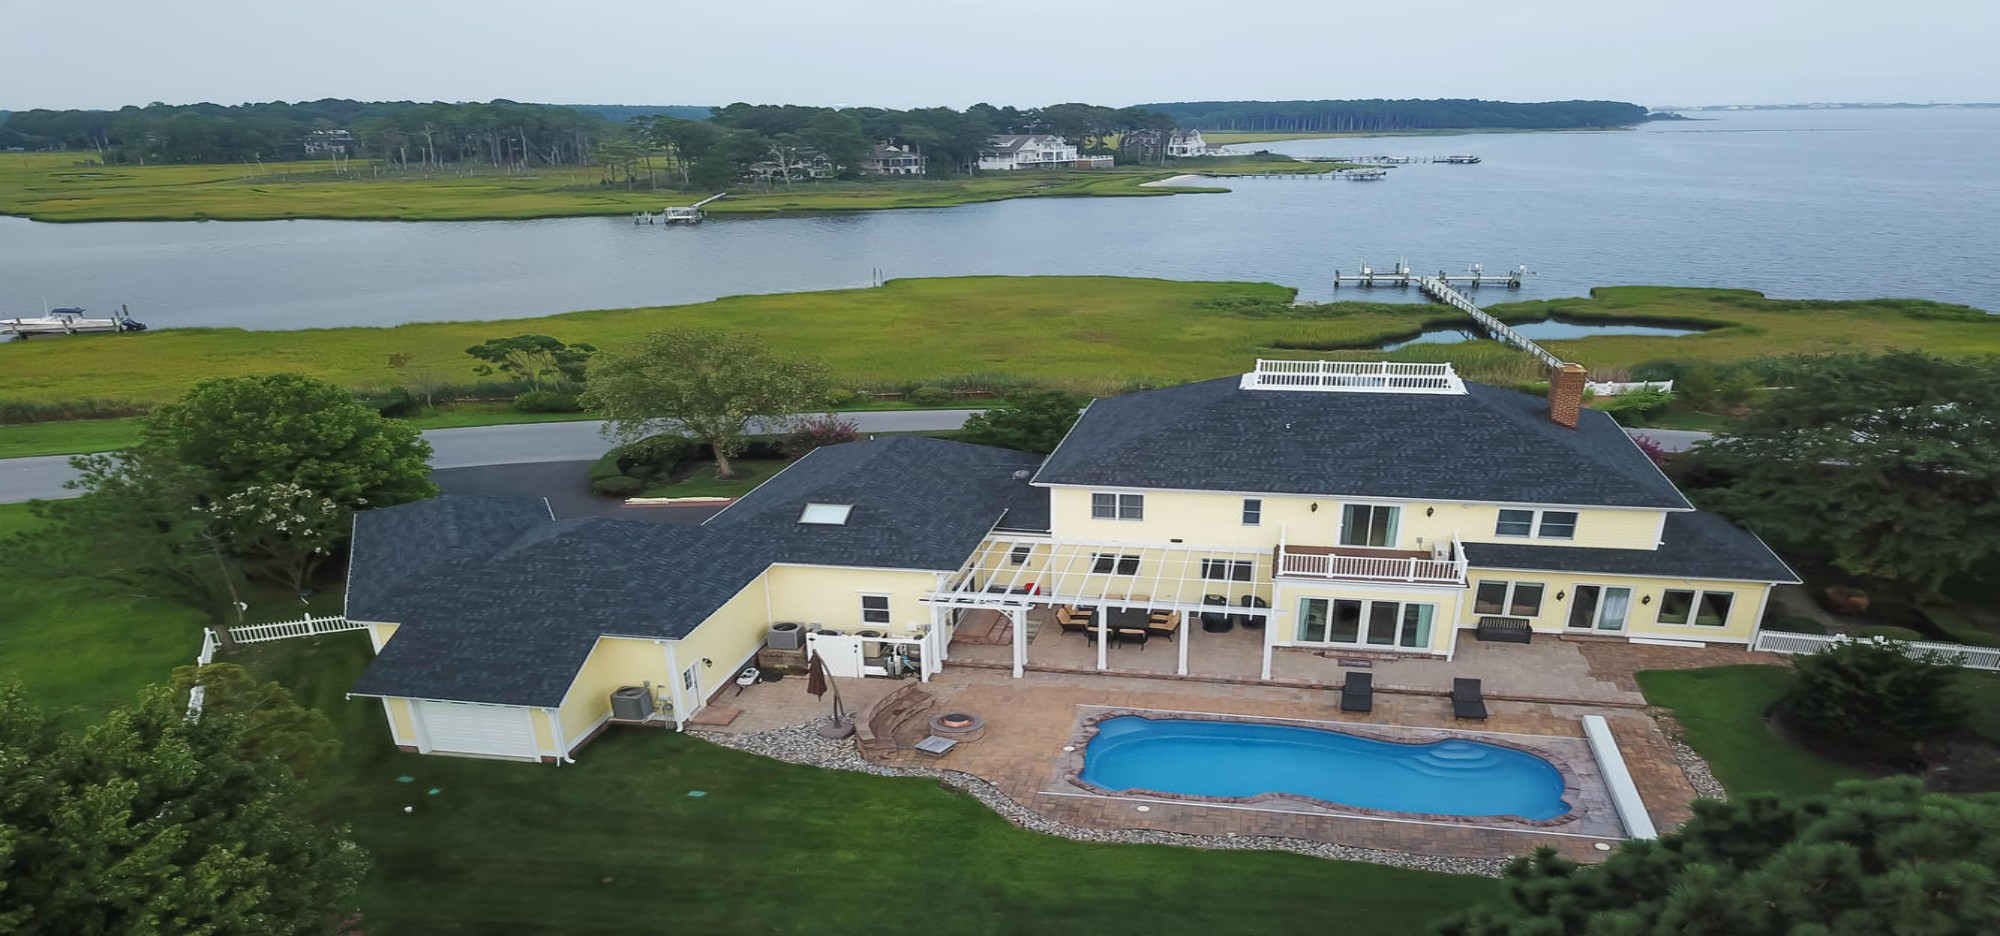 172 East Side Drive, Rehoboth Beach : $2,249,000